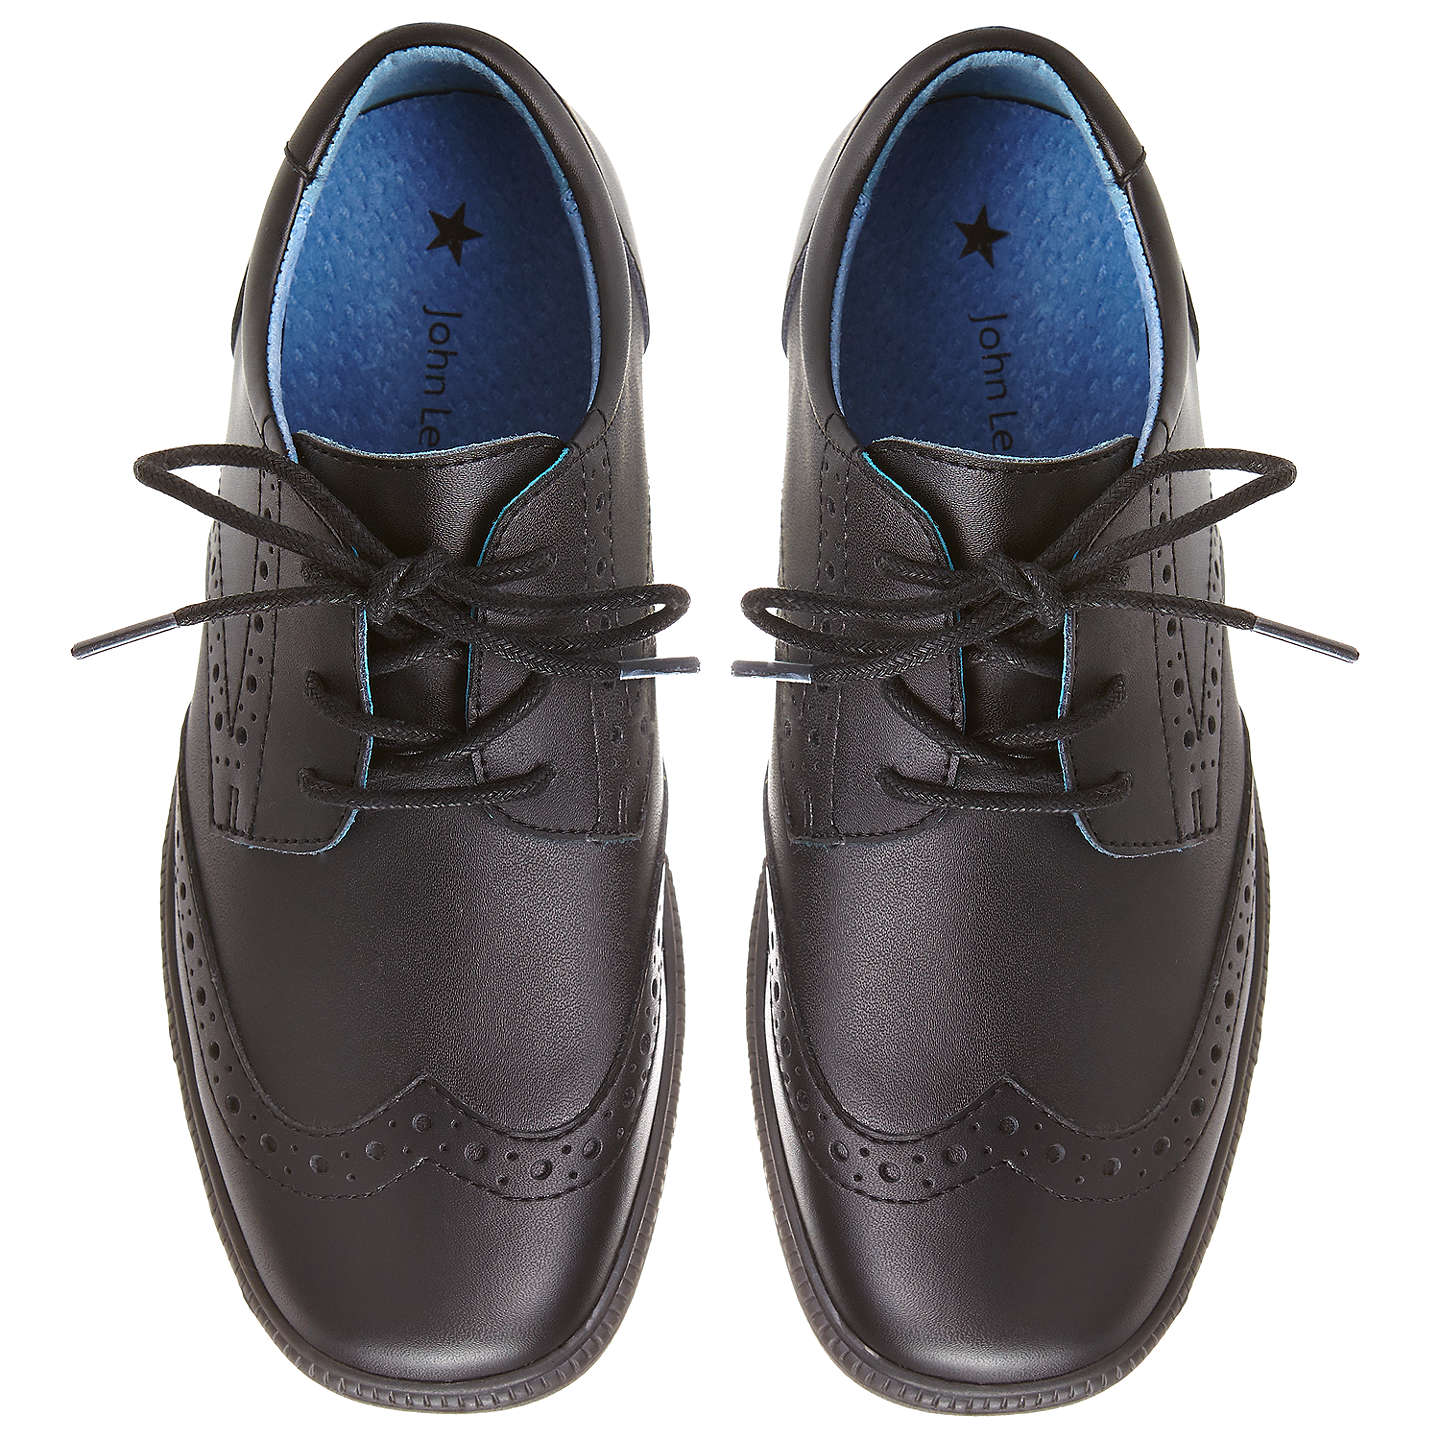 BuyJohn Lewis Chancery Laced Brogues Shoes, Black, 13 Jnr Online at johnlewis.com